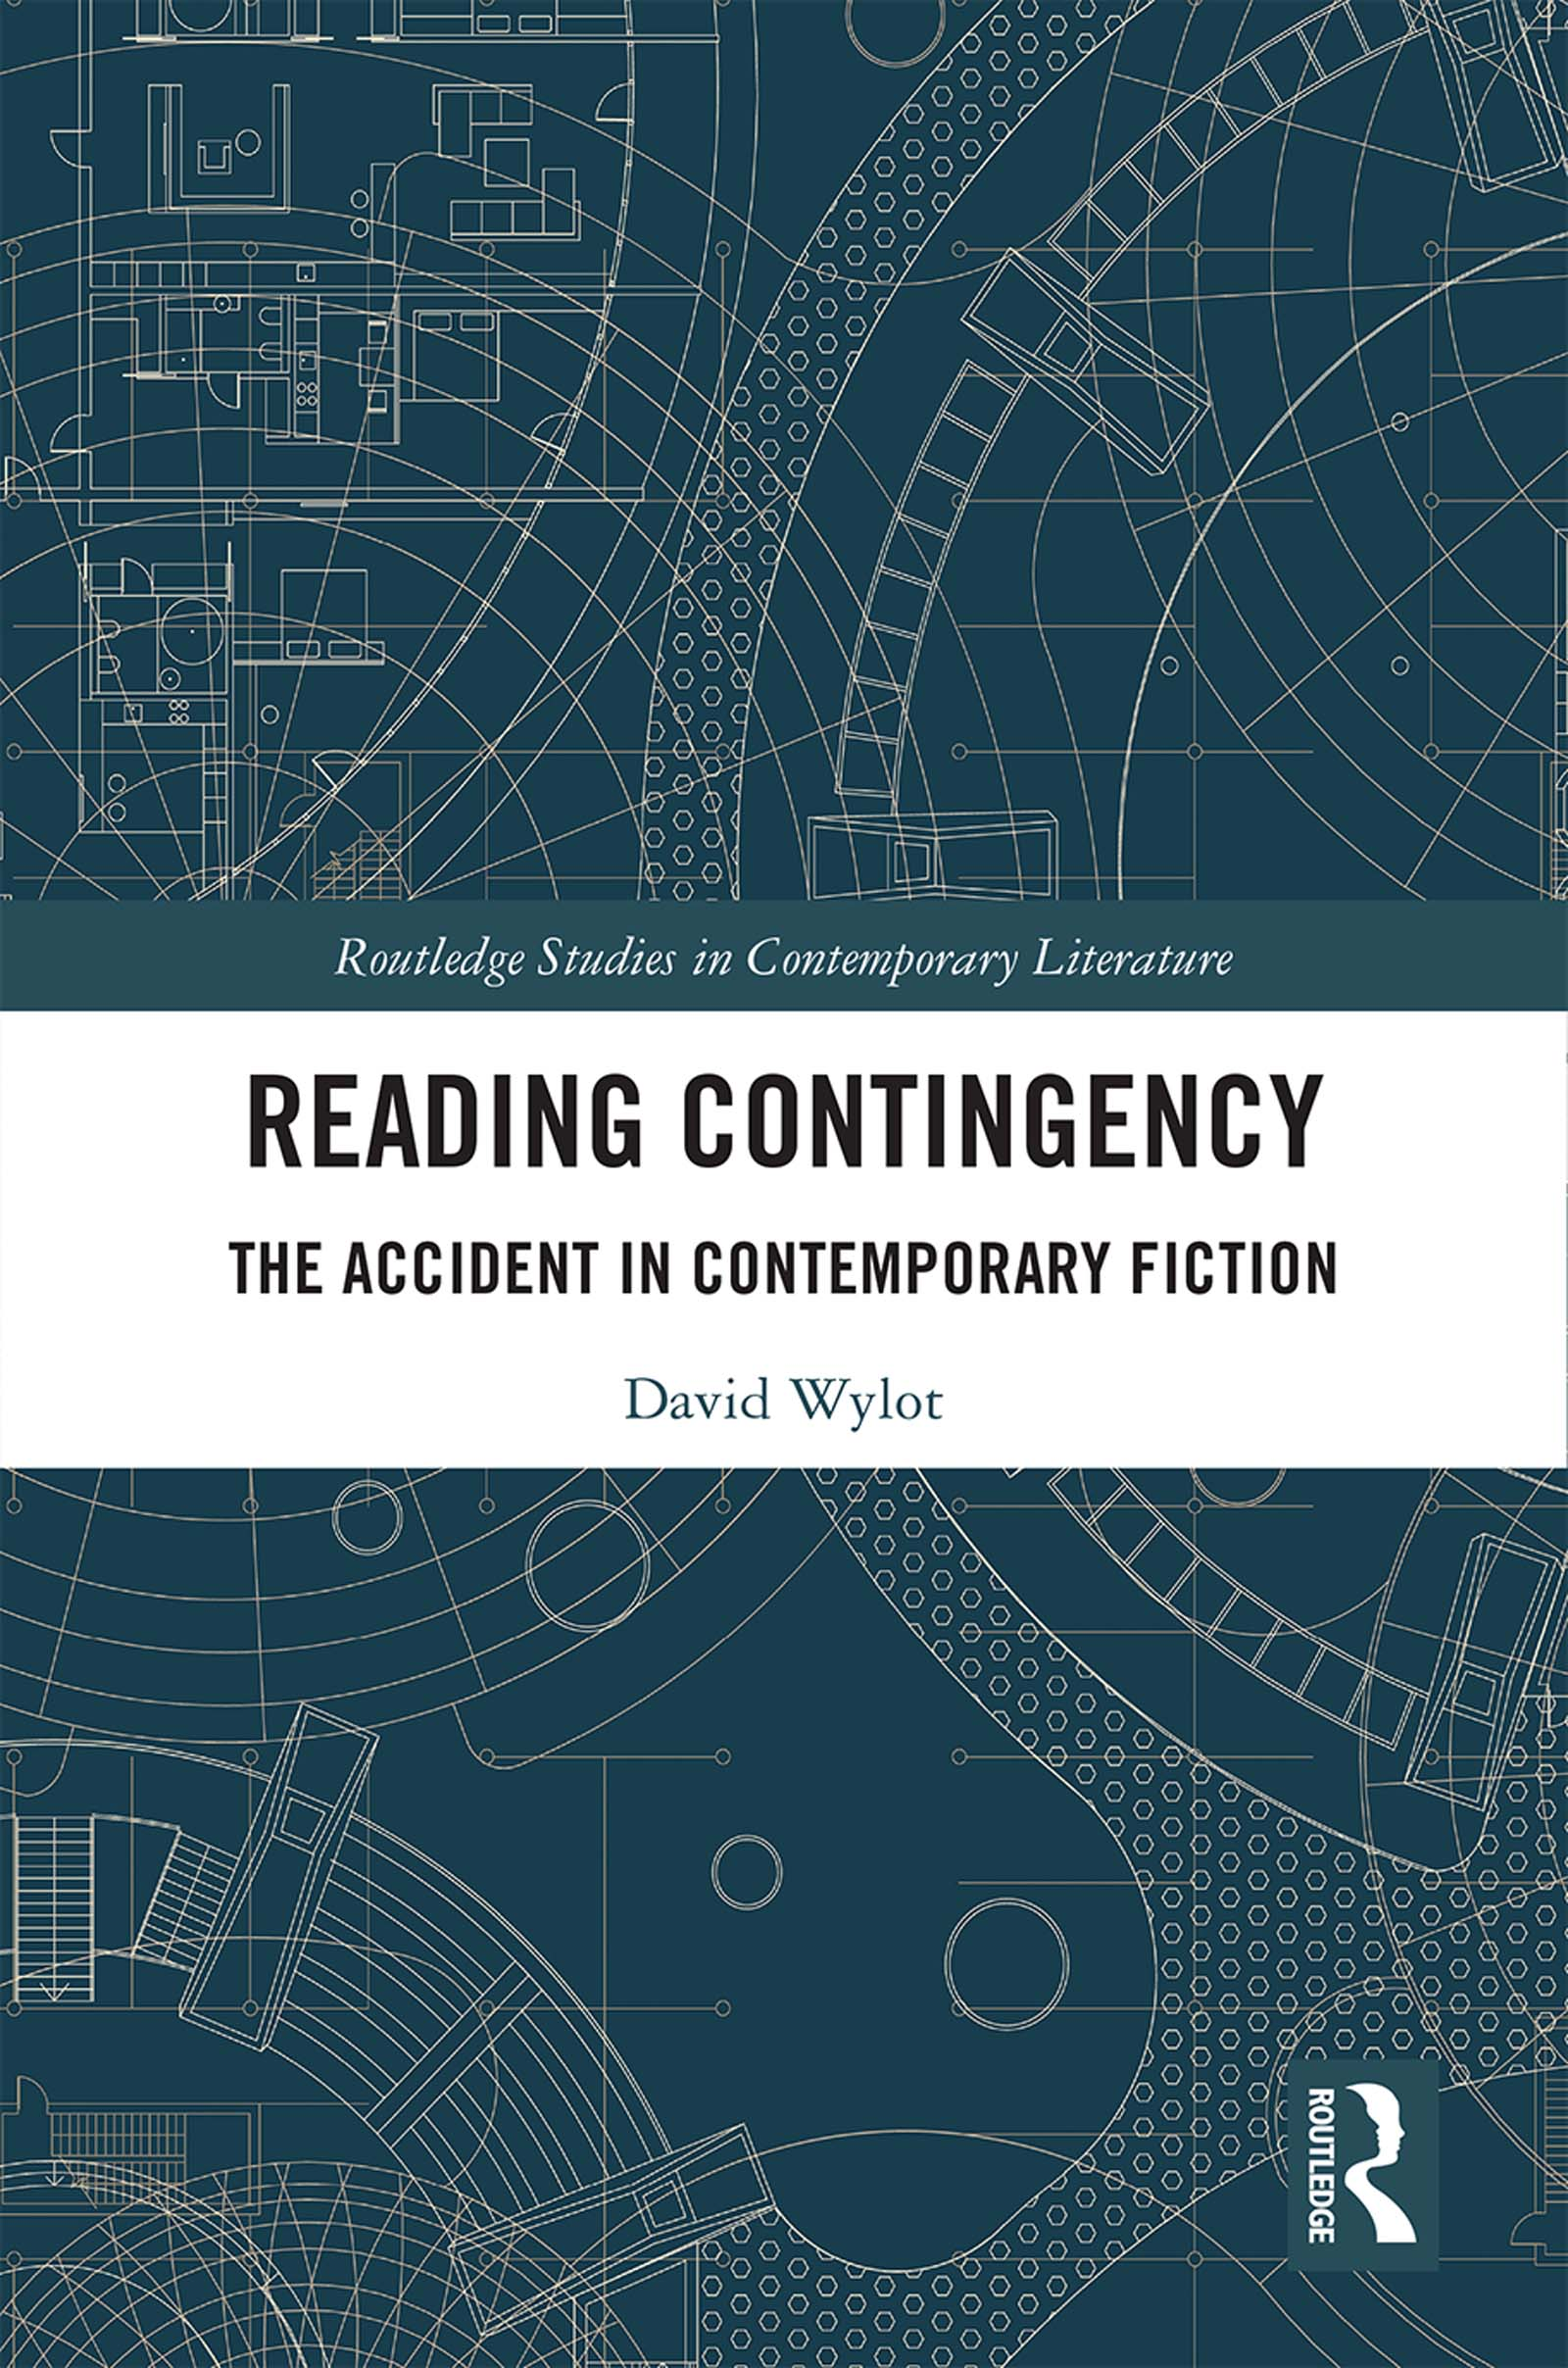 Reading Contingency: The Accident in Contemporary Fiction book cover